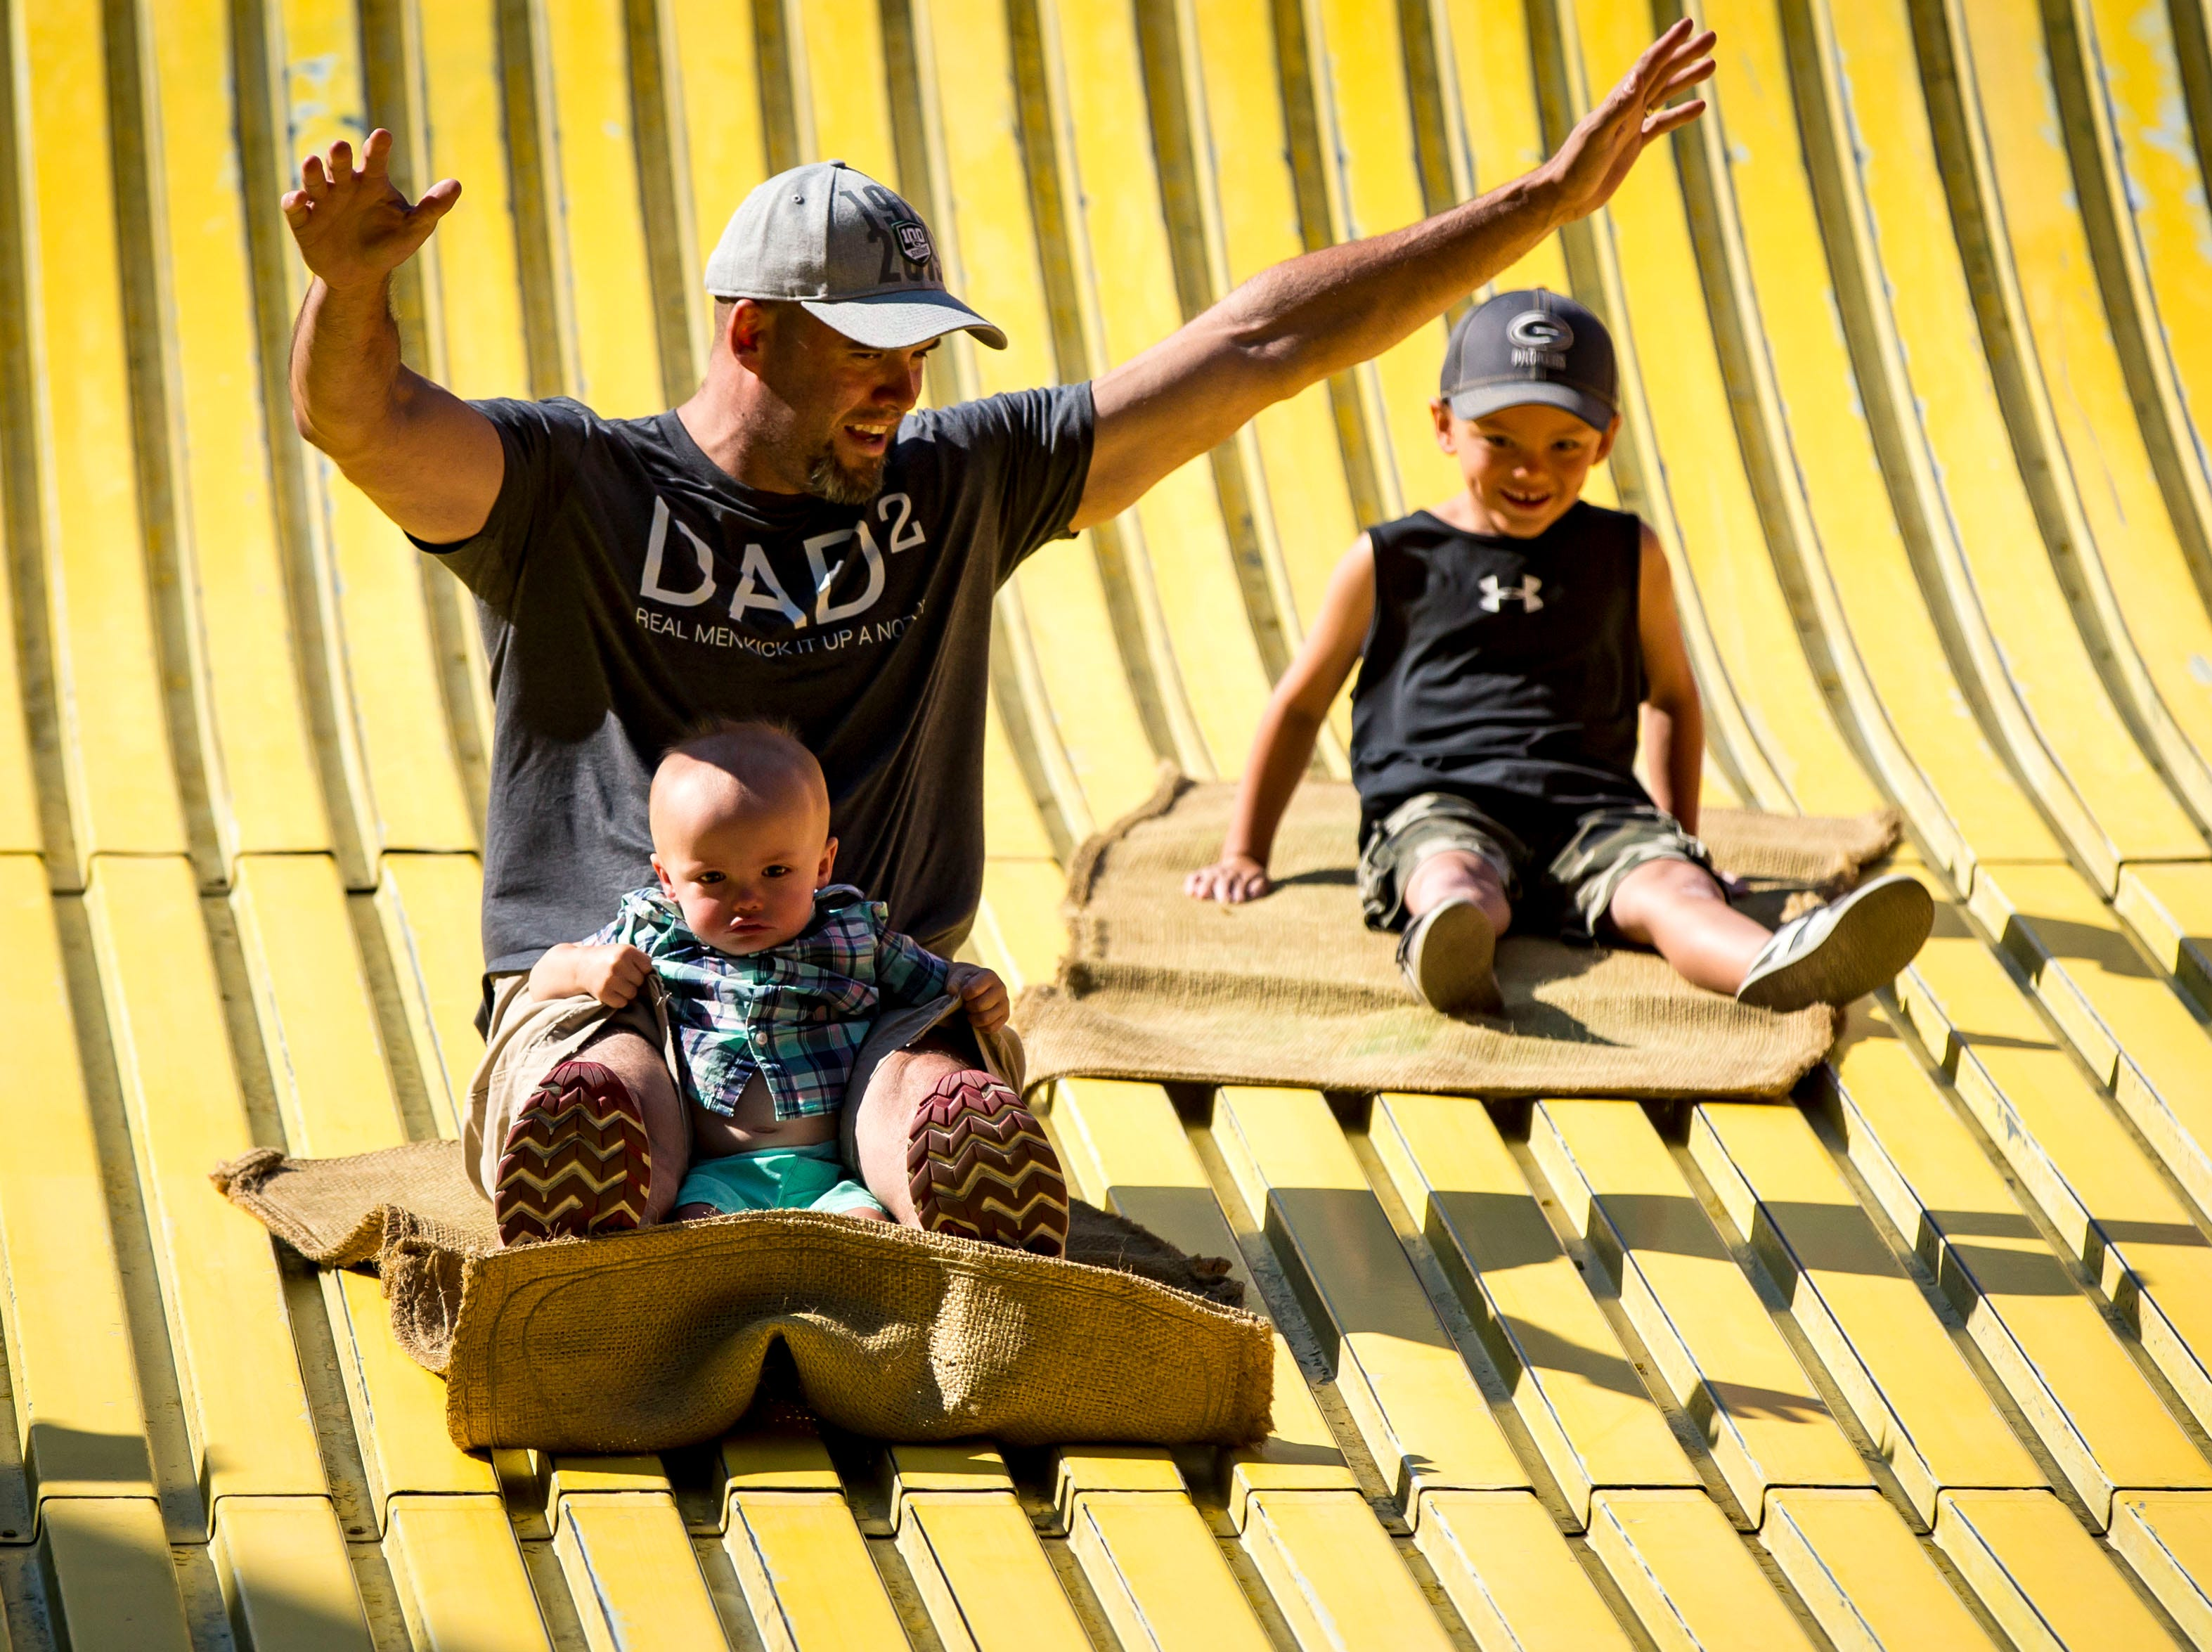 Chad Lowe of Des Moines holds his son Camdyn, age 1, while racing his son, Cayson, 6, right, on the giant slide at the 2018 Iowa State Fair in Des Moines Thursday, Aug. 9, 2018.